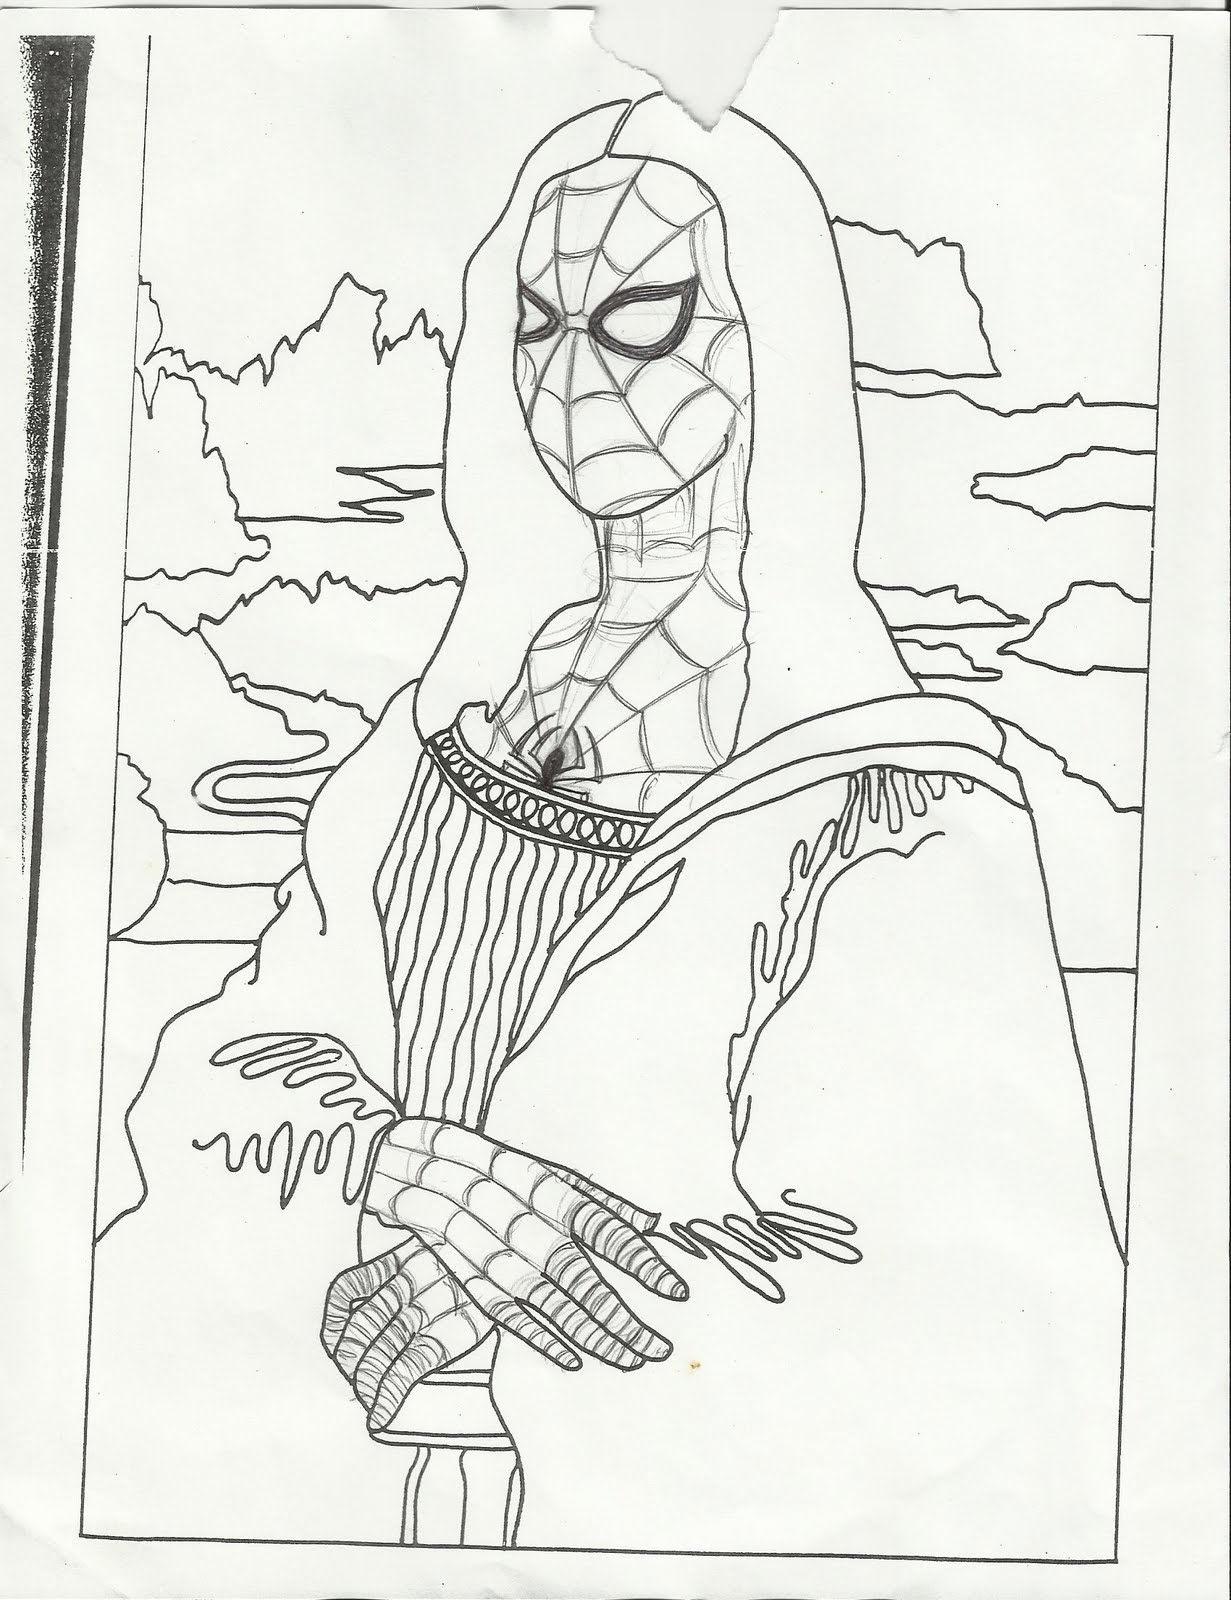 Mona lisa coloring page coloring pages for Mona lisa coloring pages